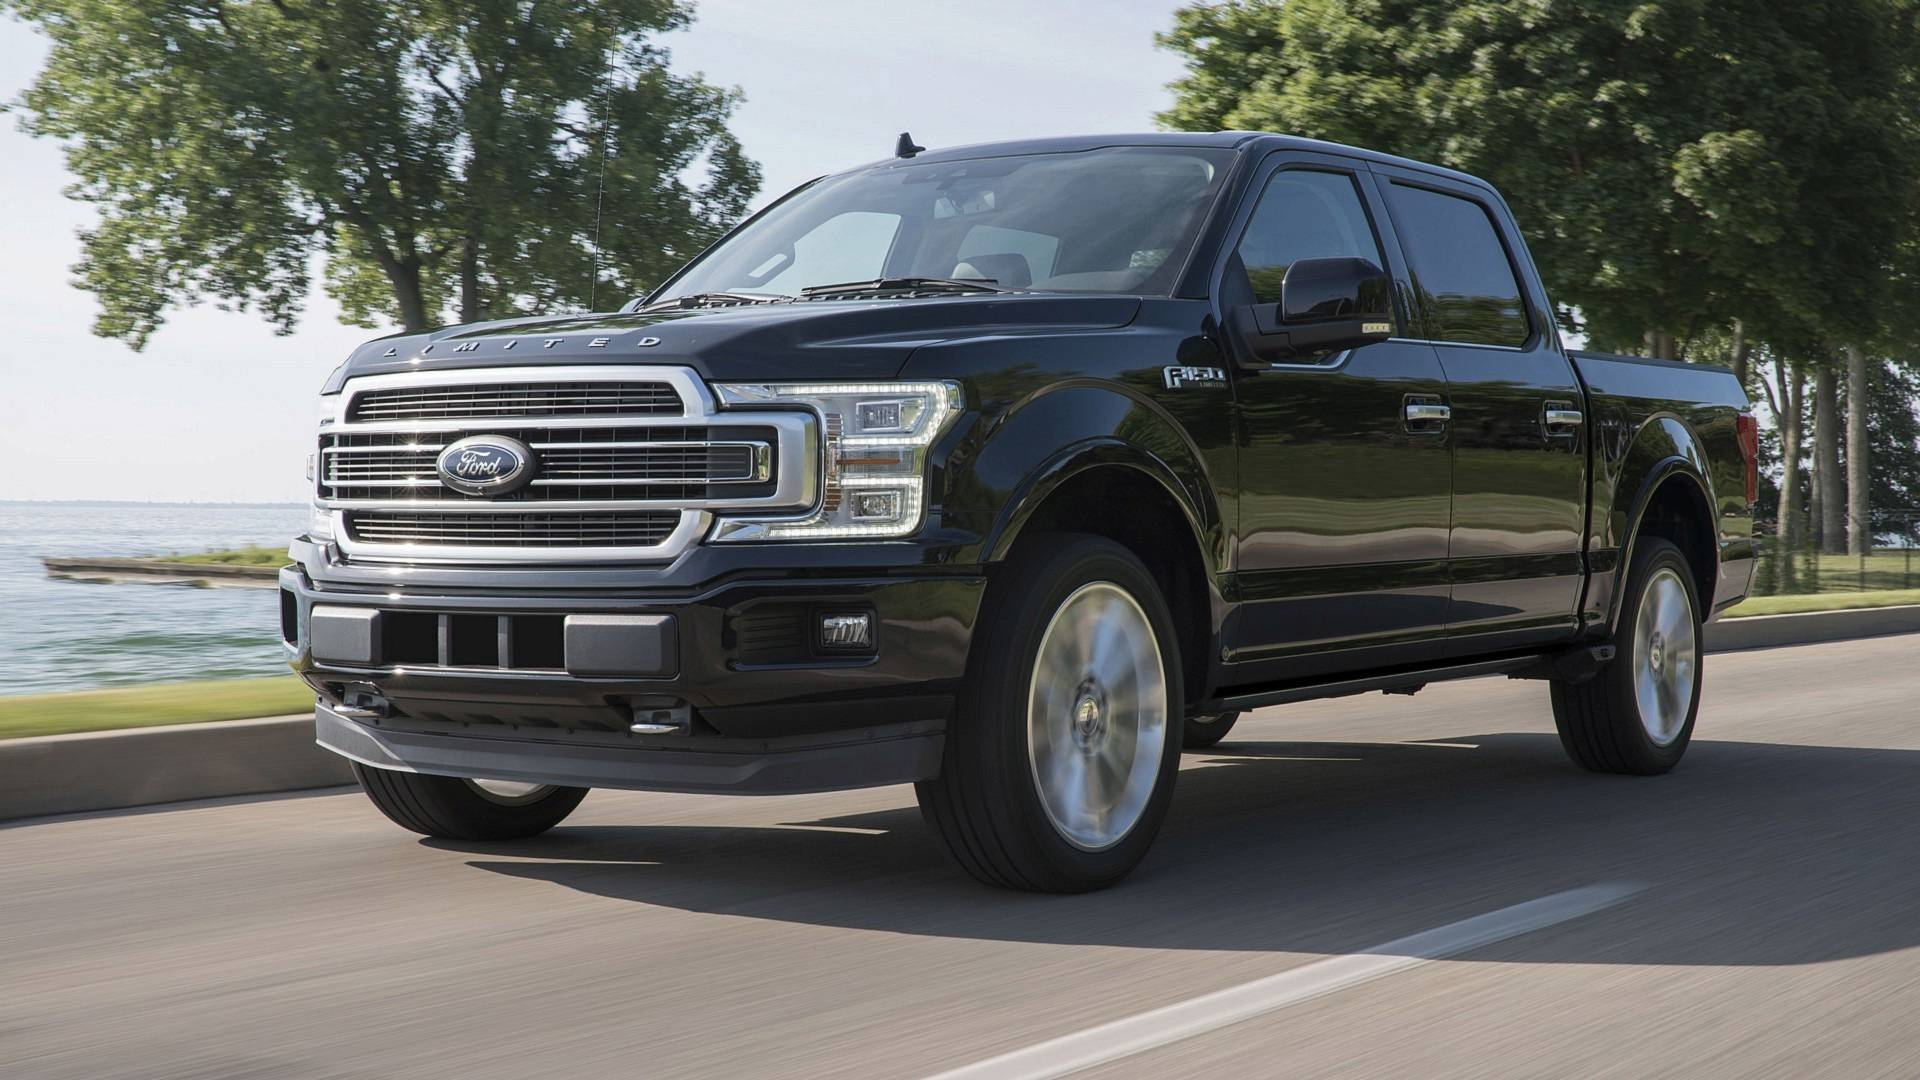 2019 Ford F-150 Limited Gains 450-hp EcoBoost V6 Engine ...